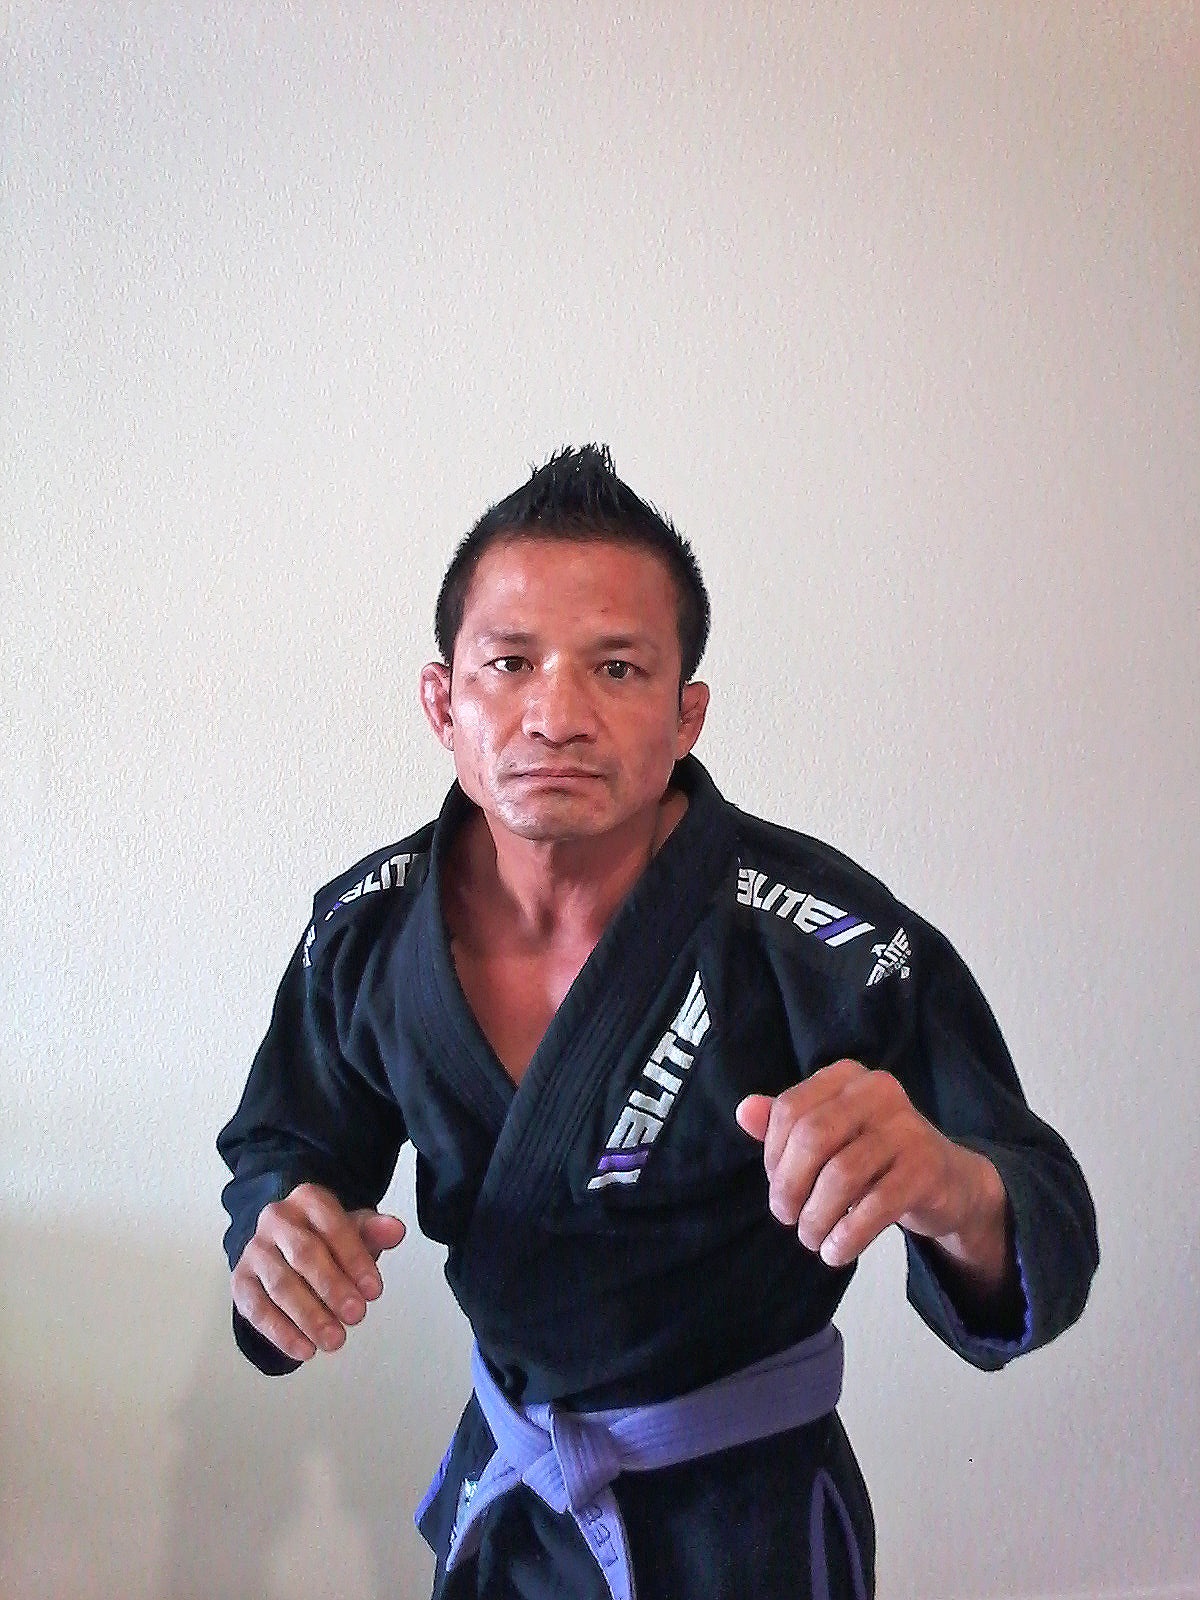 Elite Sports Team Elite Bjj Fighter Jet Lee  Image3